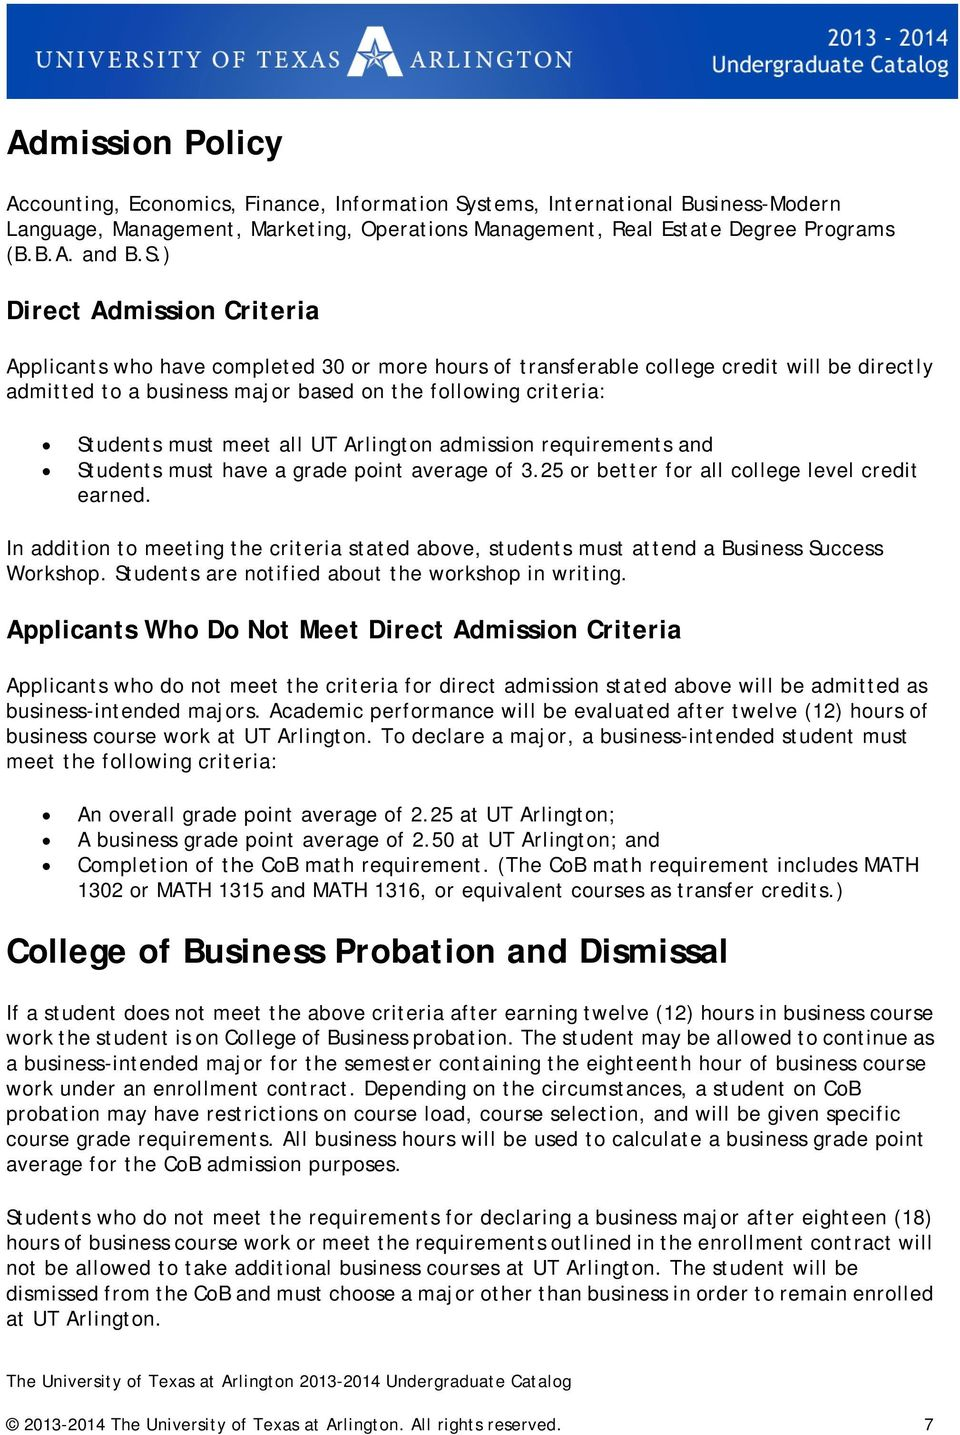 ) Direct Admission Criteria Applicants who have completed 30 or more hours of transferable college credit will be directly admitted to a business major based on the following criteria: Students must